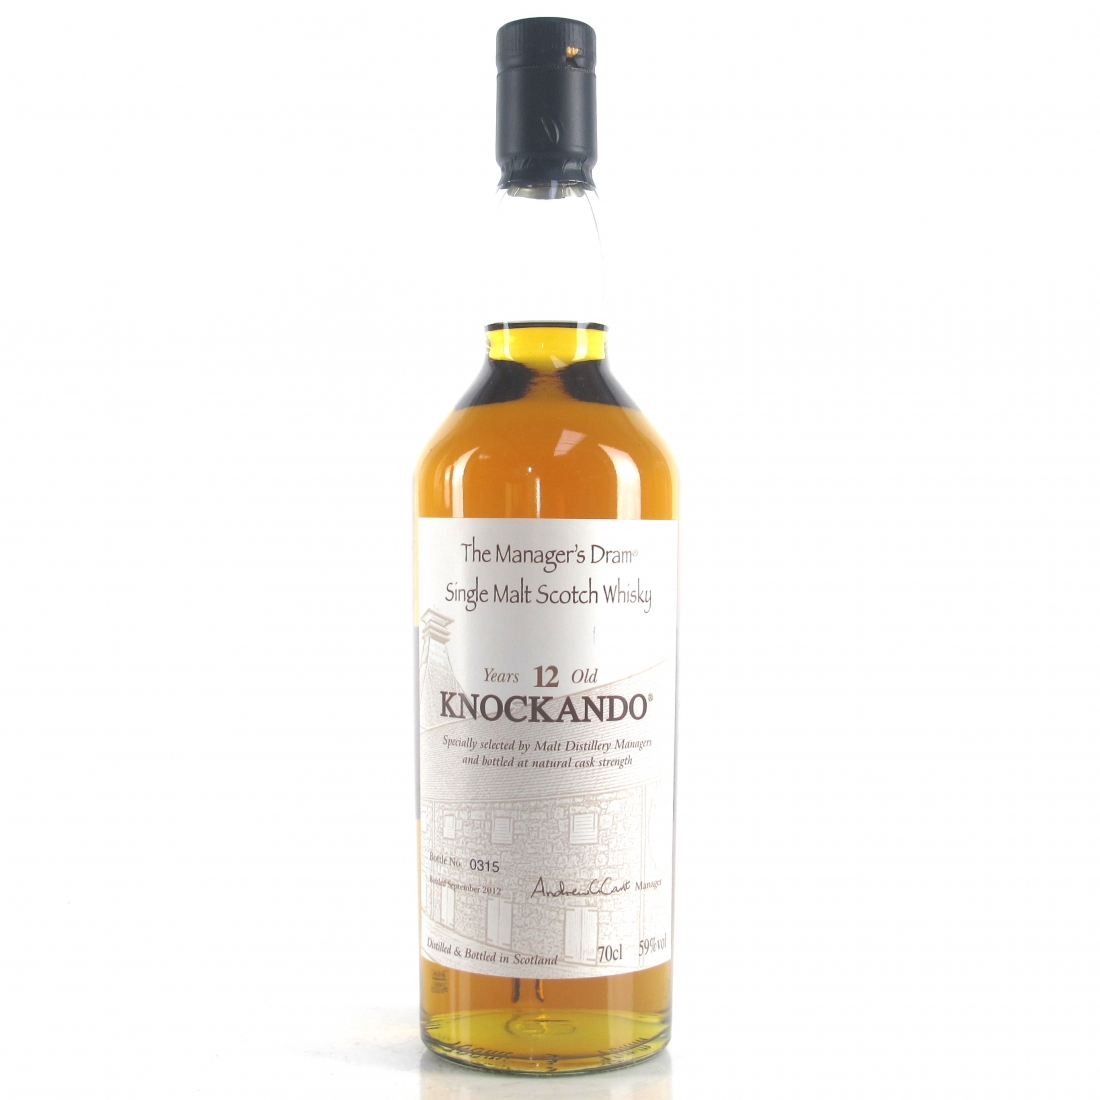 Knockando 12 Year Old Manager's Dram 2012